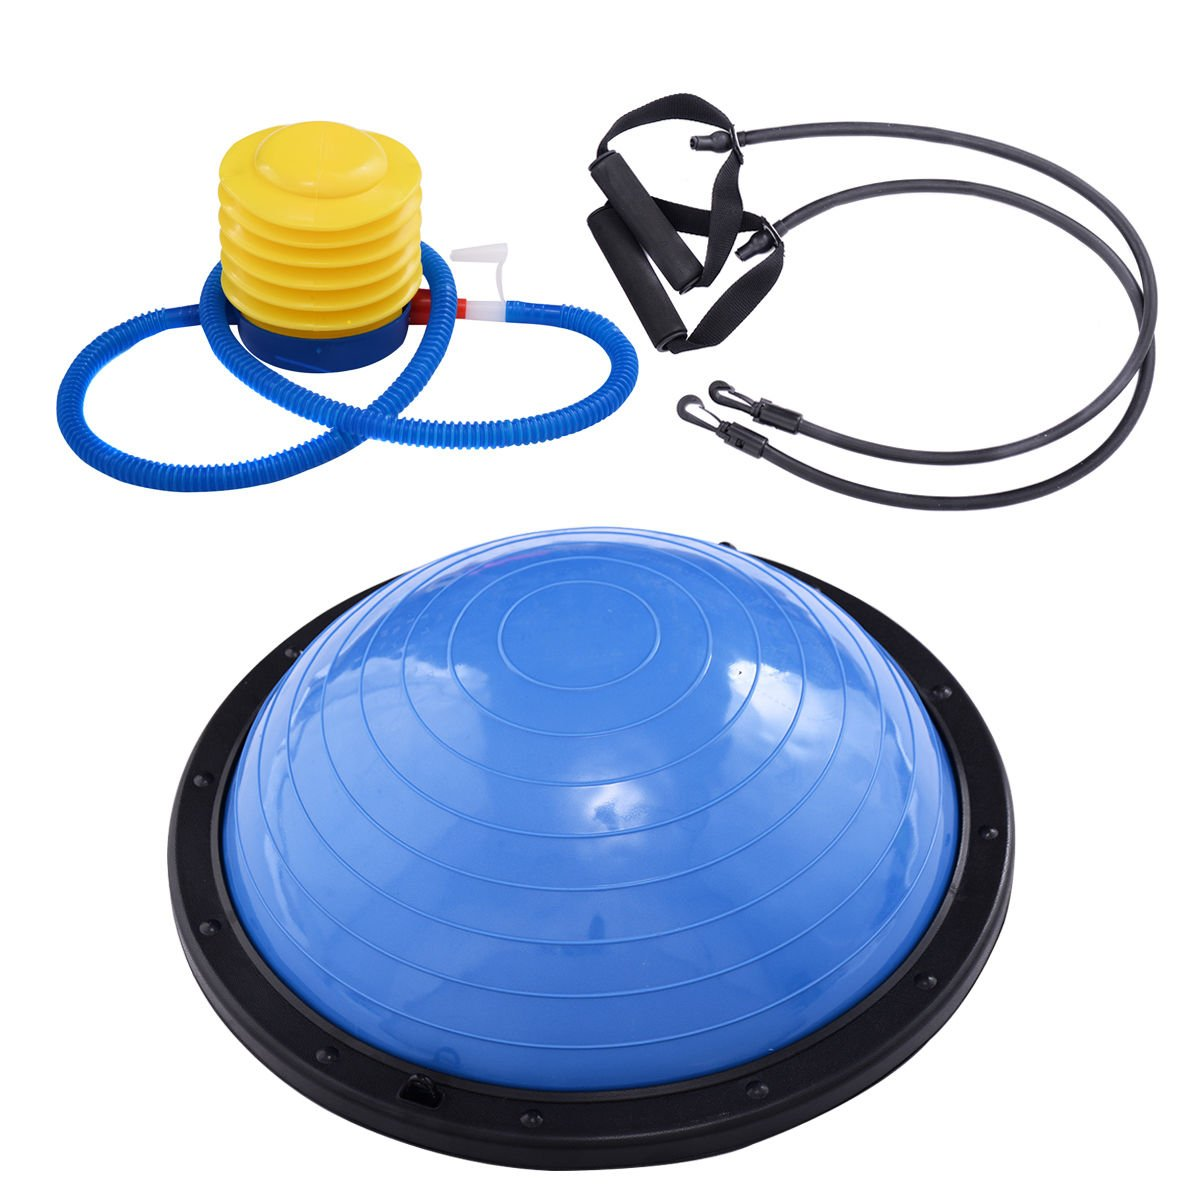 Giantex 23 Balance Trainer Ball, Bosu Ball with Resistance Bands Pump Heavy Duty Stability Exercise Fitness Trainer Ball Support 660 lbs for Office, Gym, Home, Half Yoga Exercise Ball